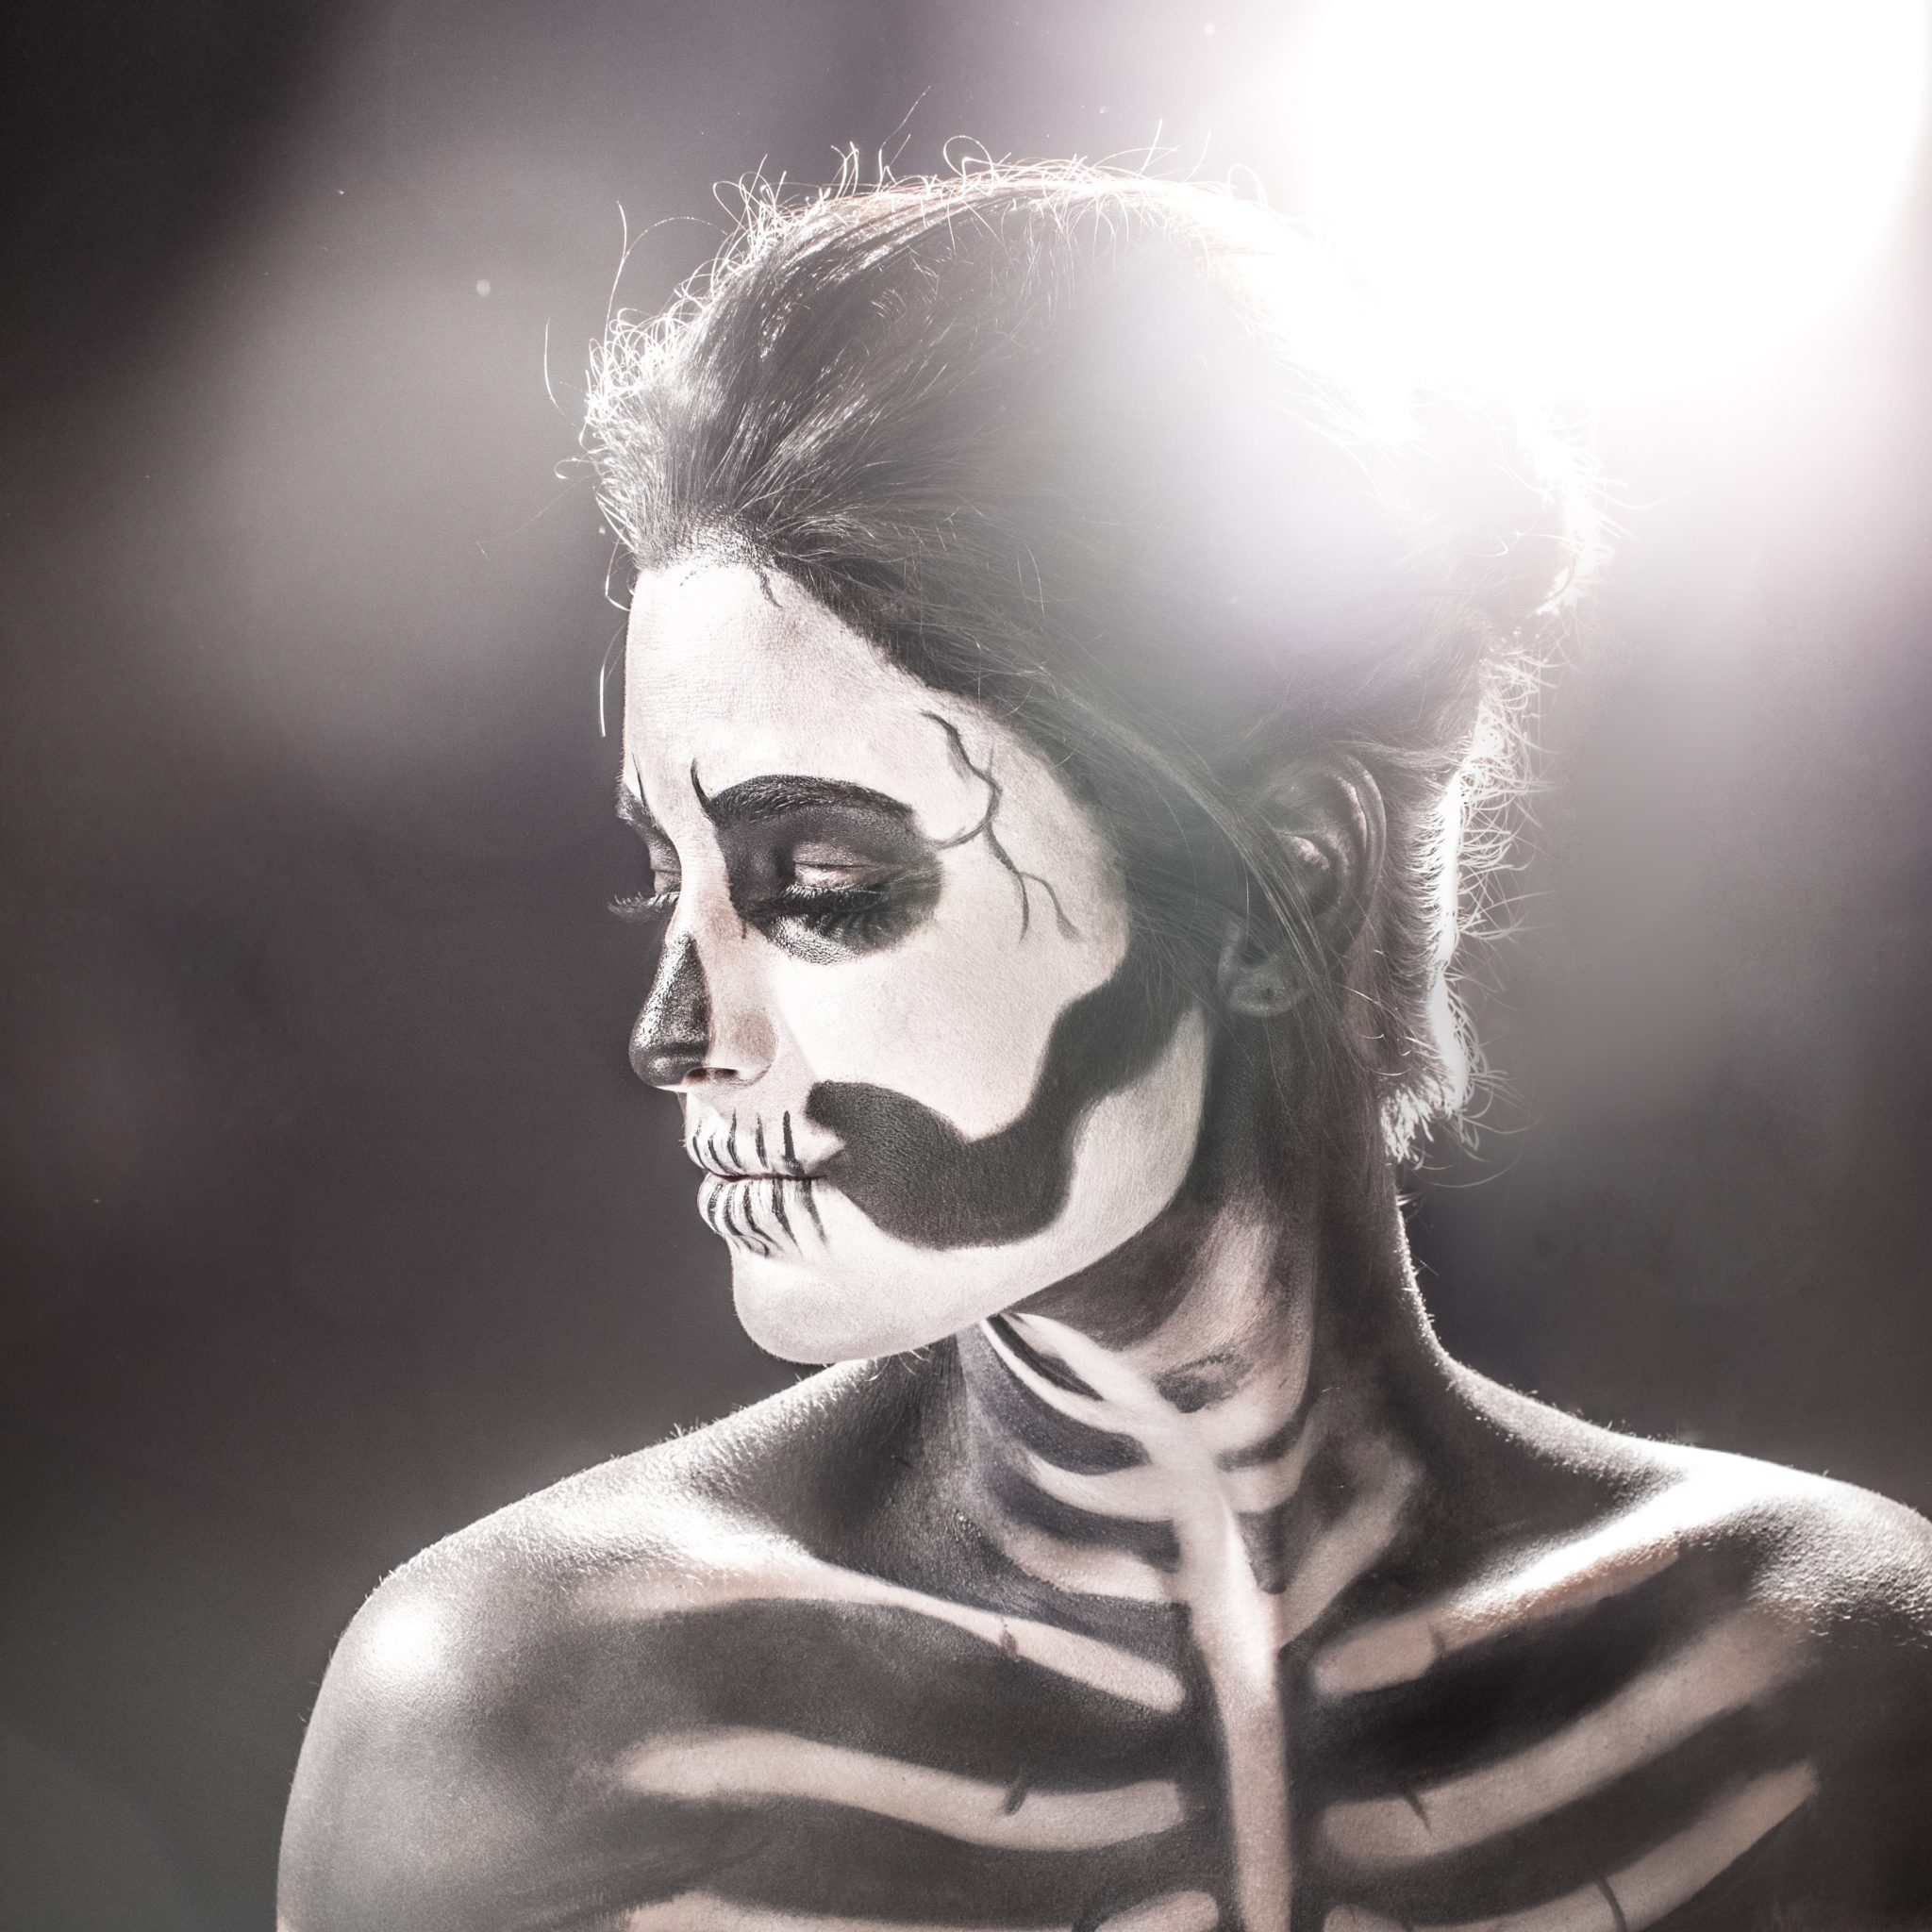 Skeleton Halloween Makeup | halloween makeup ideas | halloween costume ideas | how to do makeup for halloween | halloween inspired makeup ideas | makeup tips for halloween || Dressed to Kill